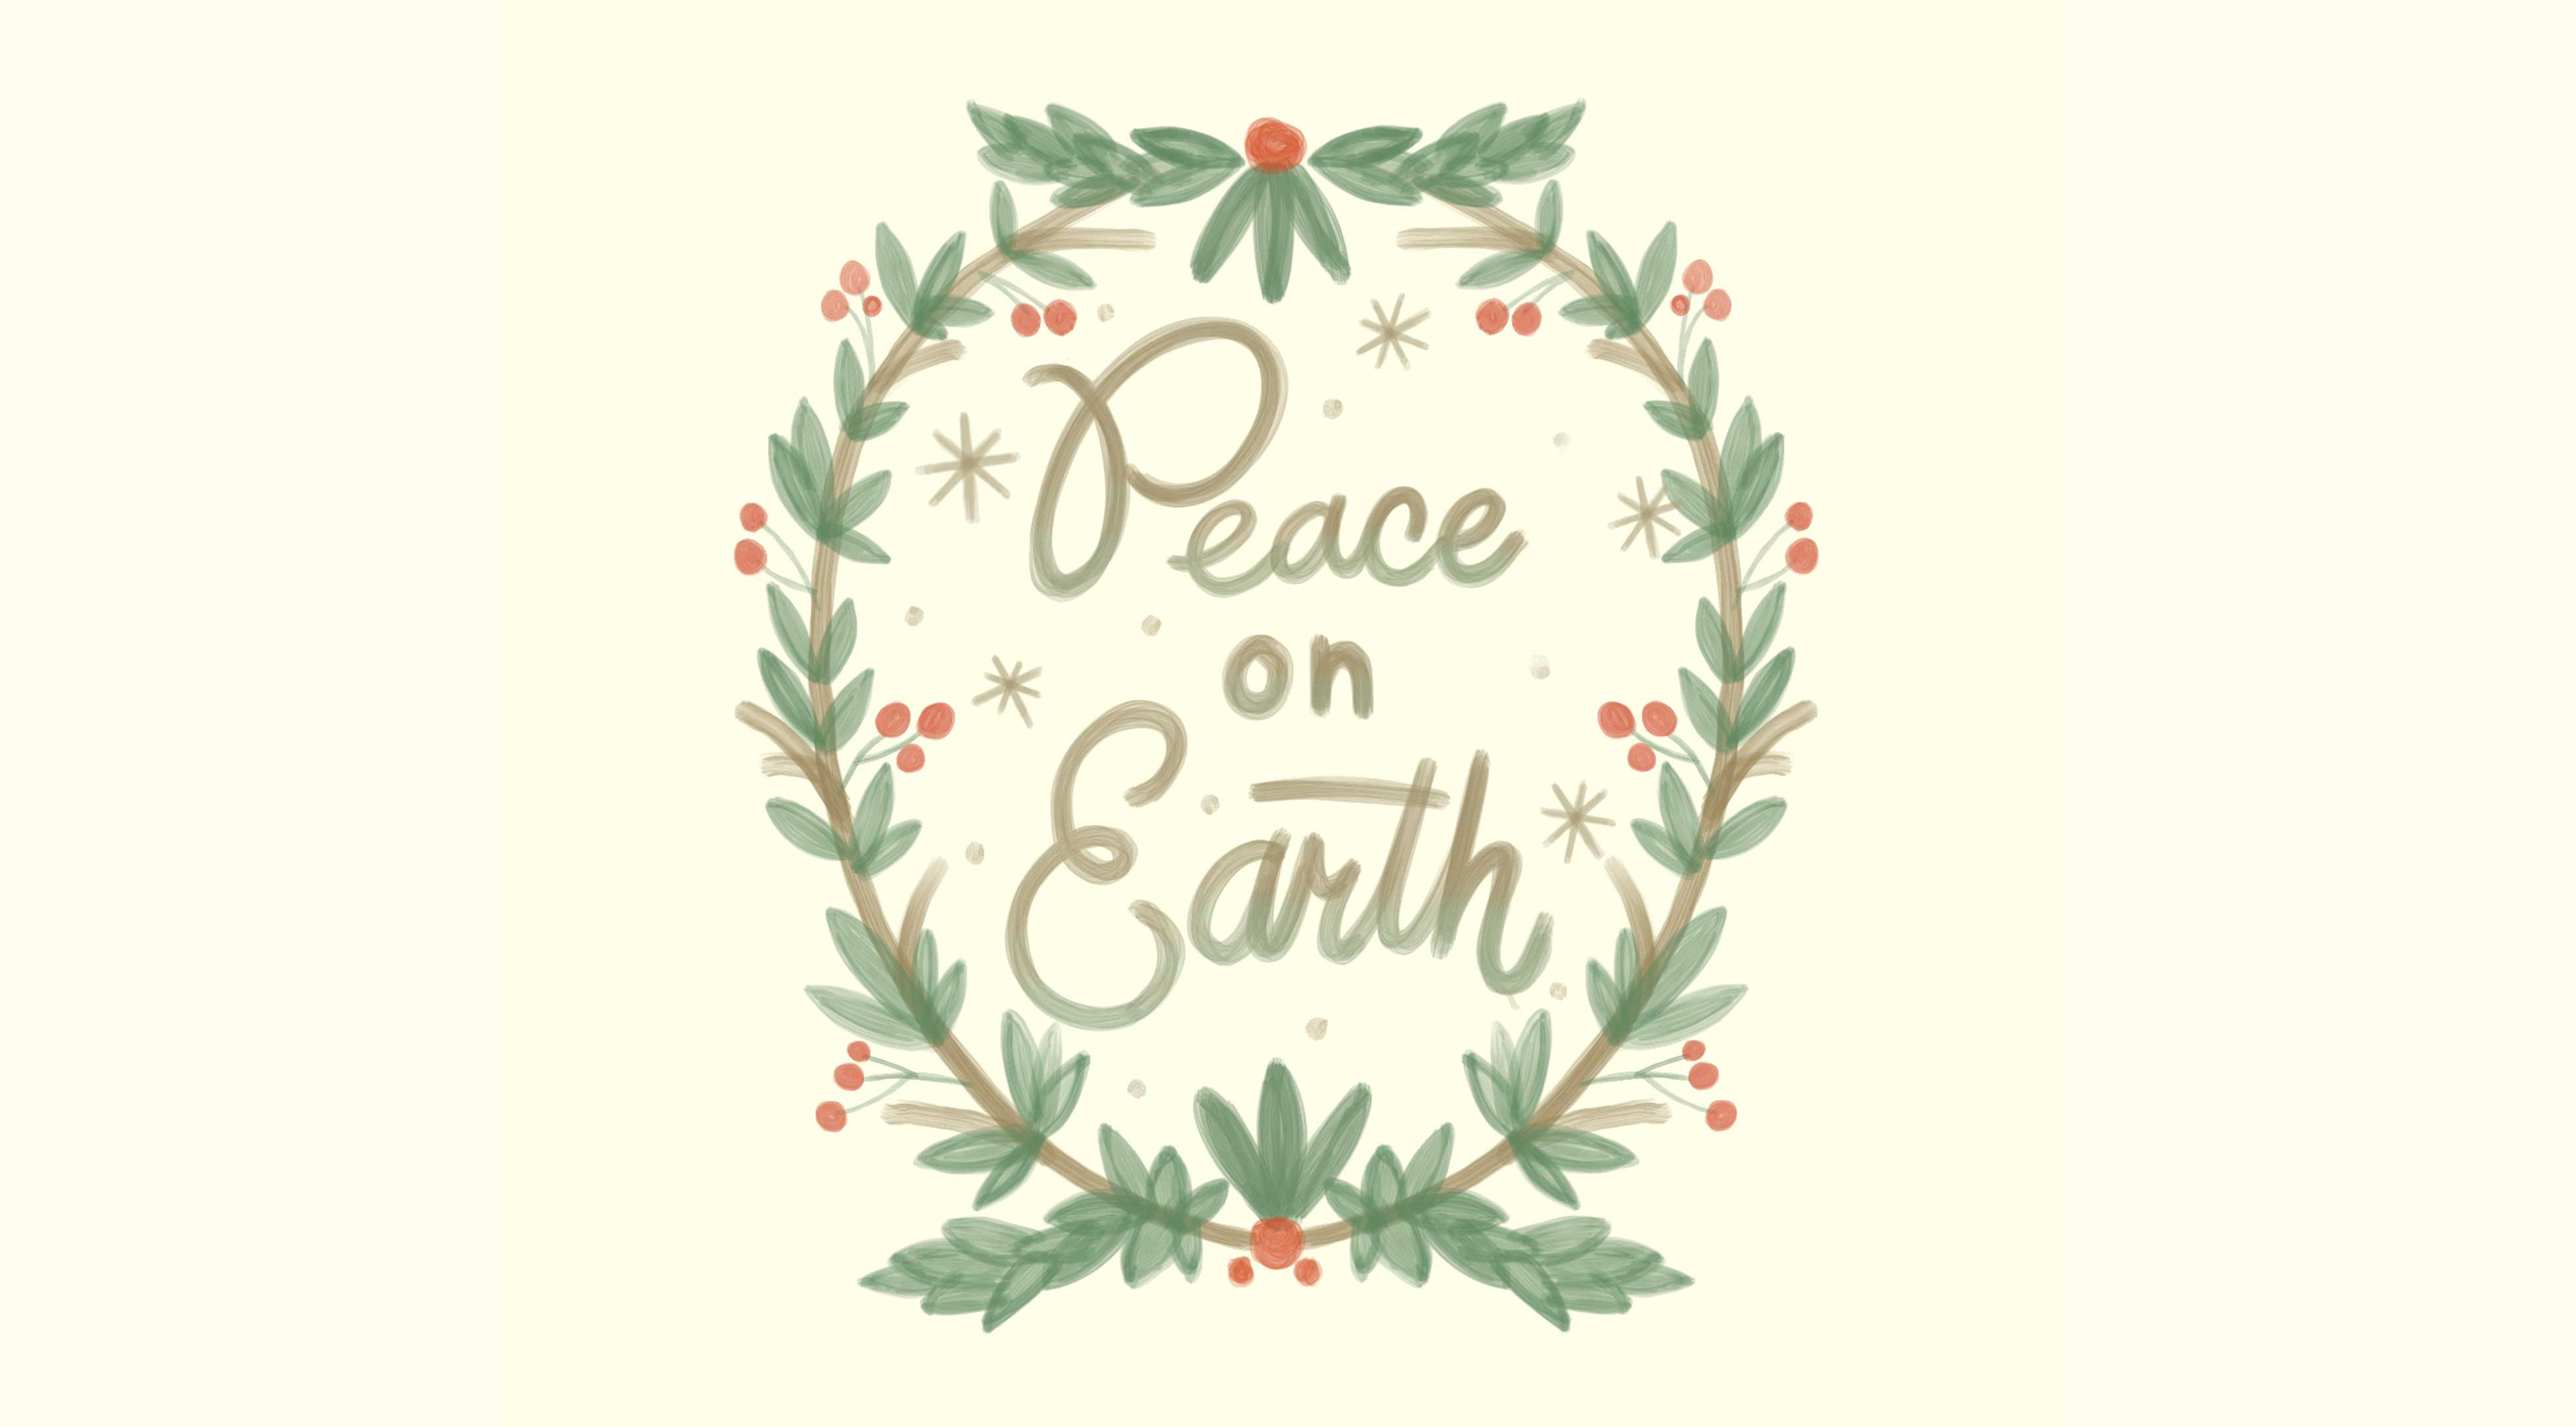 PeaceonEarth_Powerpoint-Announcement